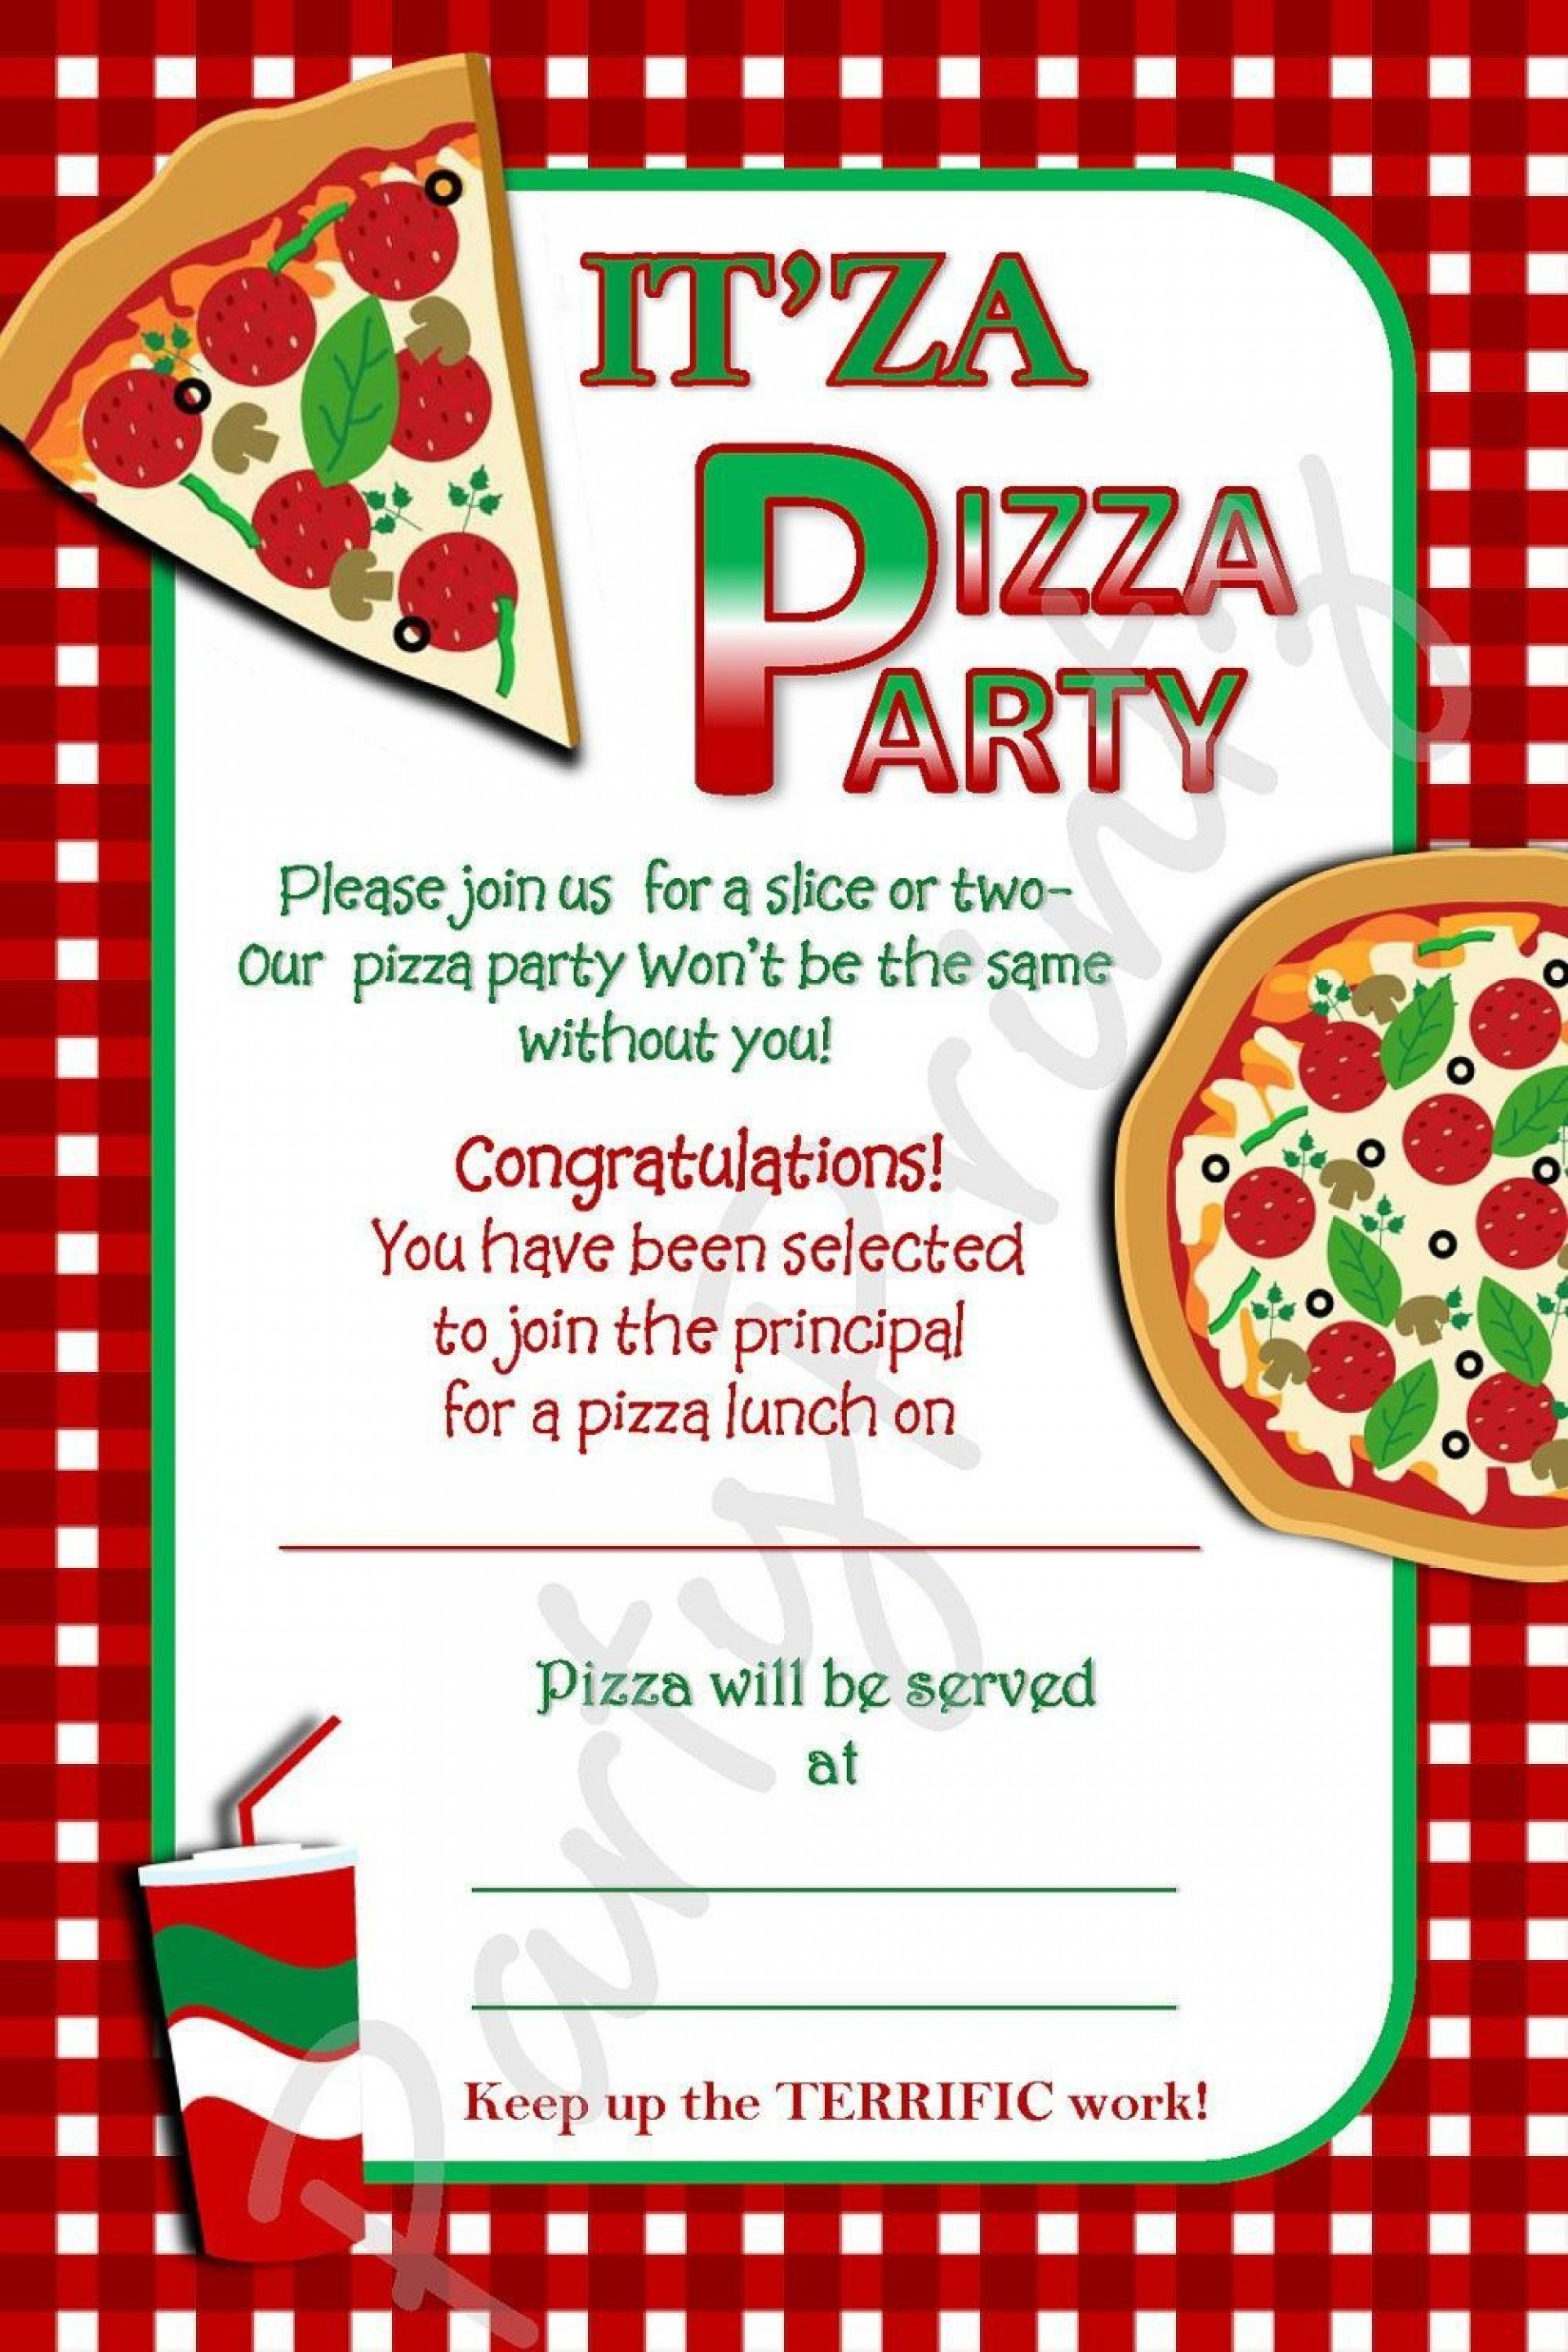 003 Impressive Pizza Party Invitation Template Free Design  Printable1920